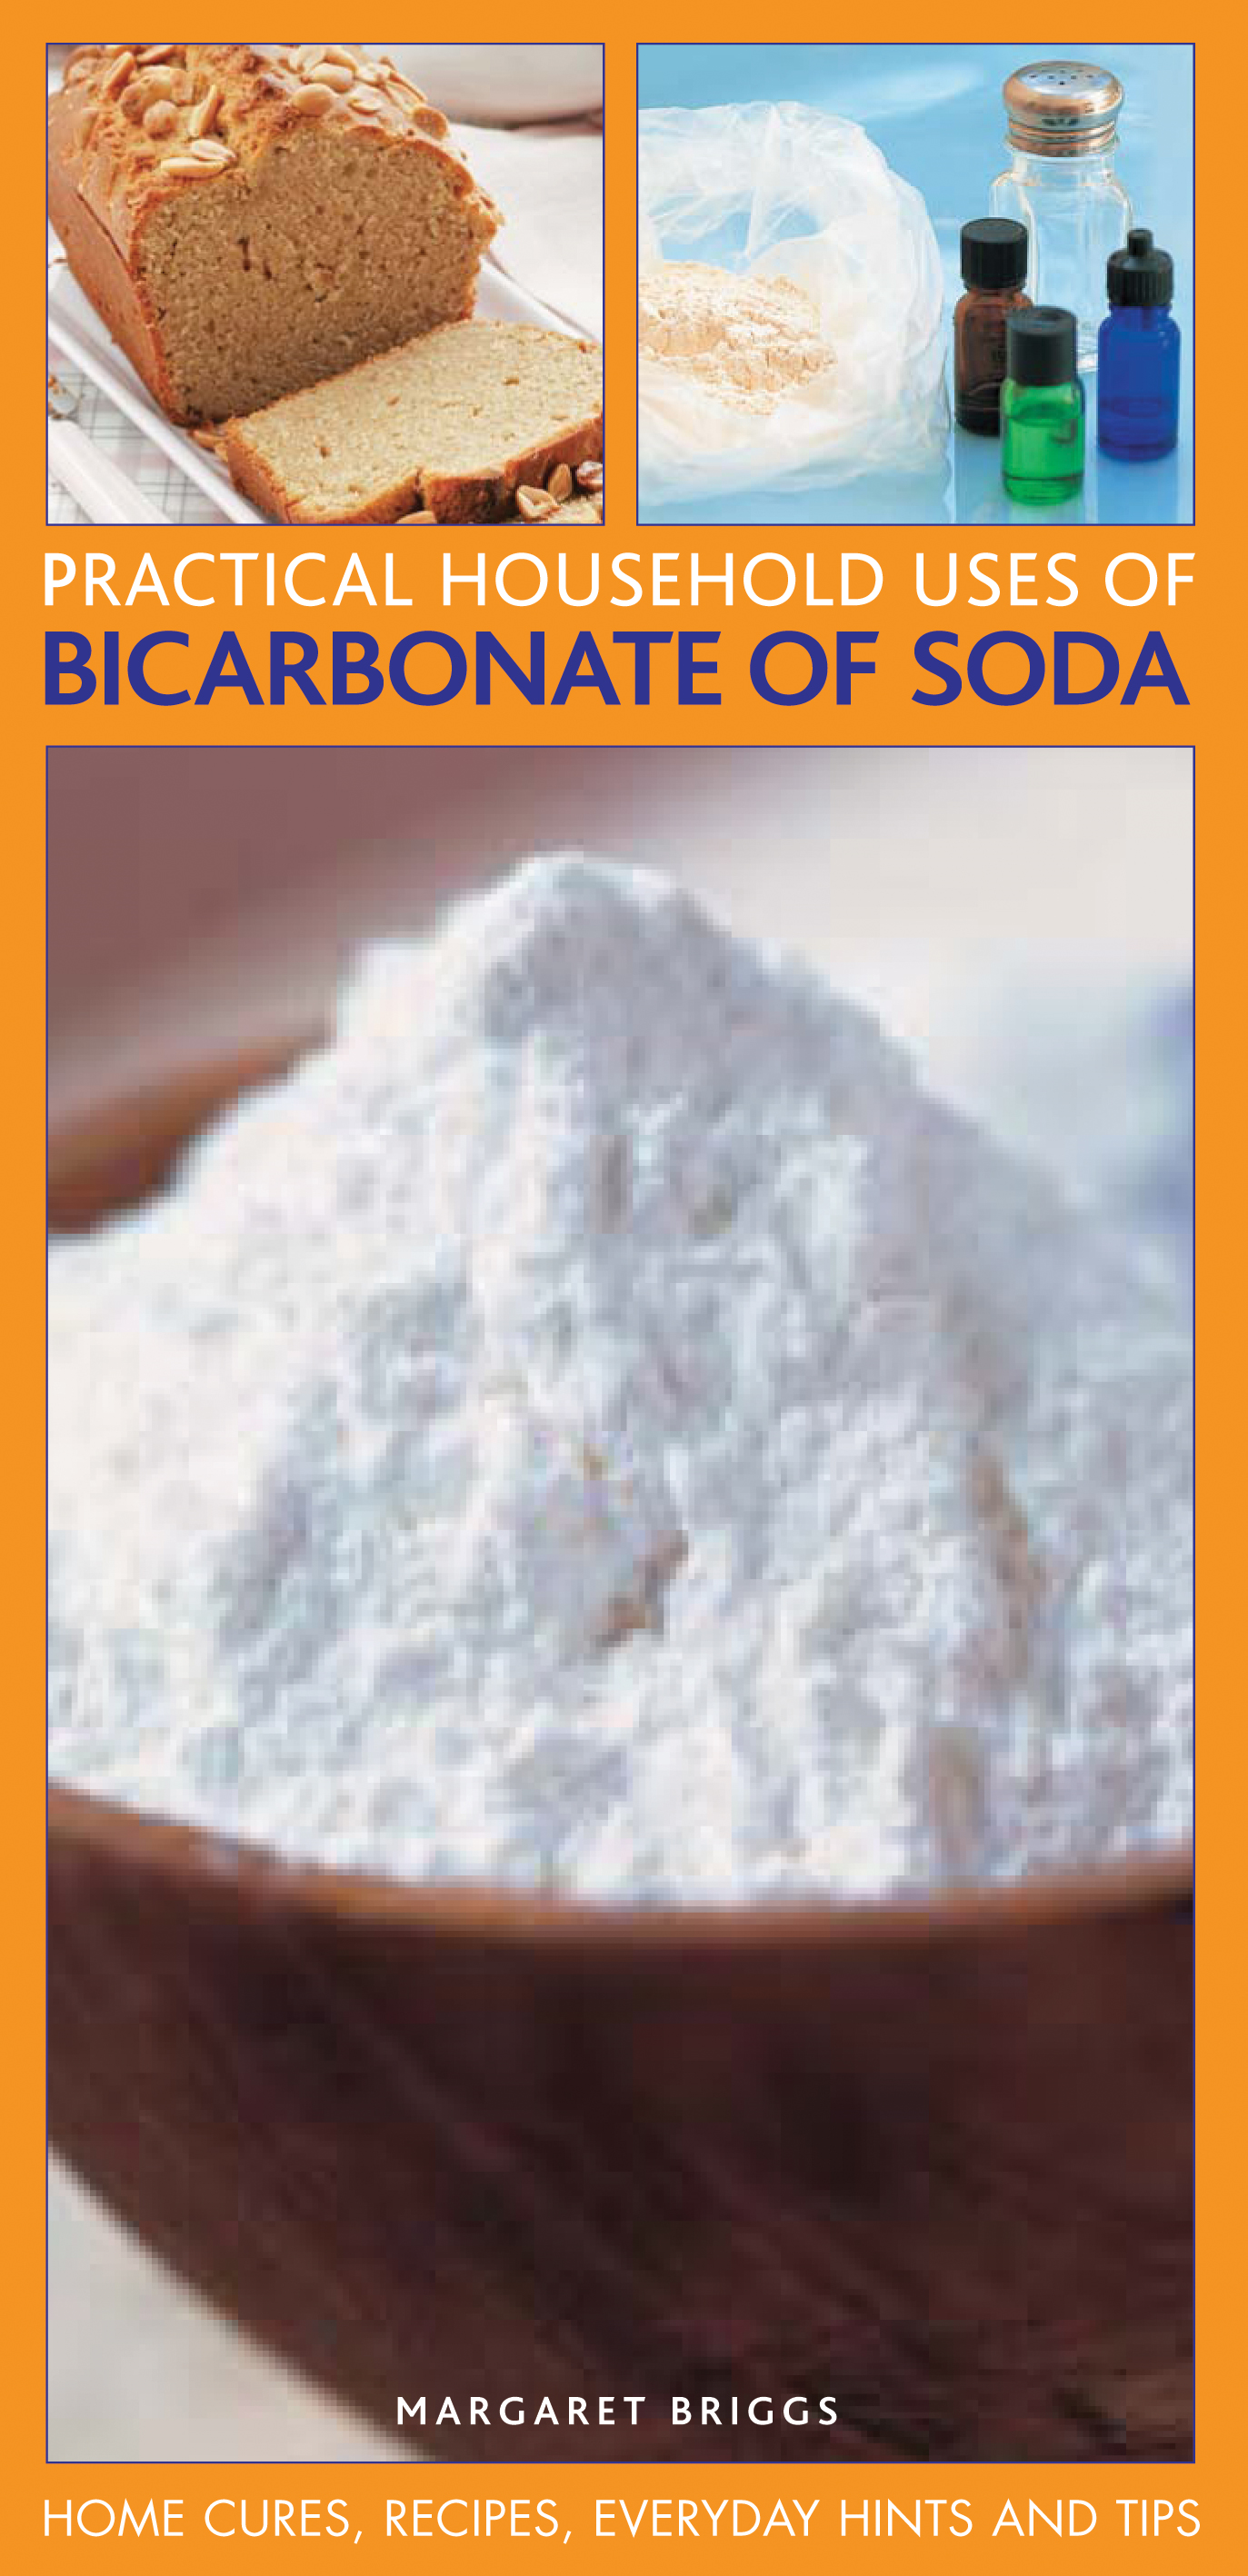 Practical Household Uses of Bicarbonate of Soda Home Cures,  Recipes,  Everyday Hints and Tips